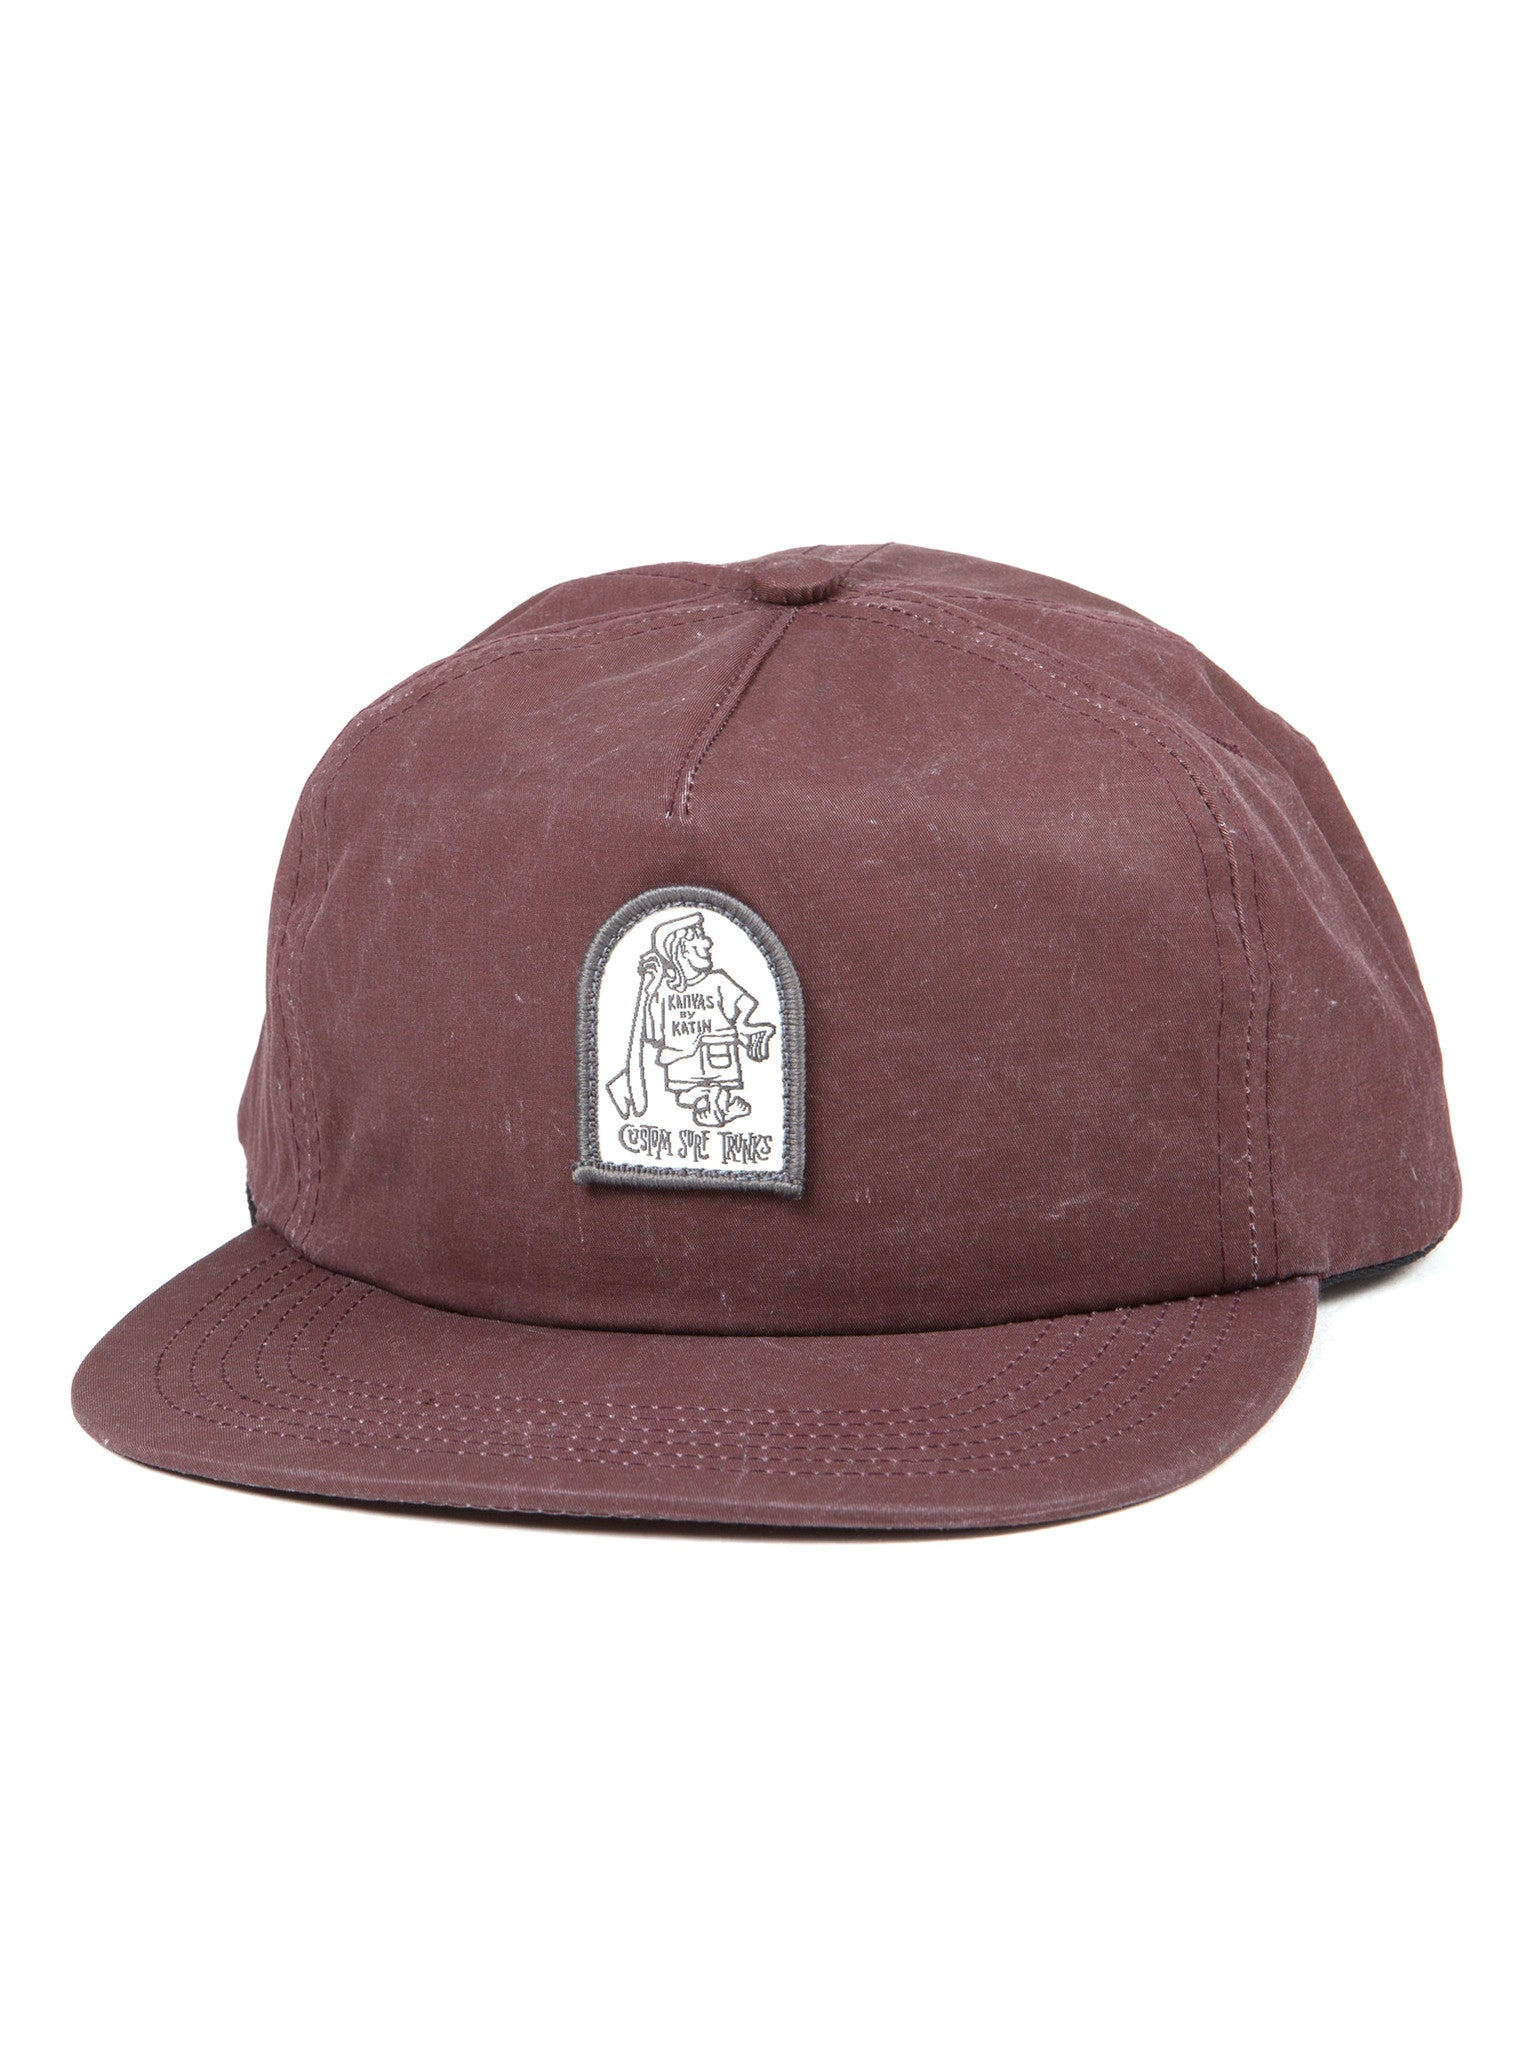 Katin / Standard Hat - Dark Red